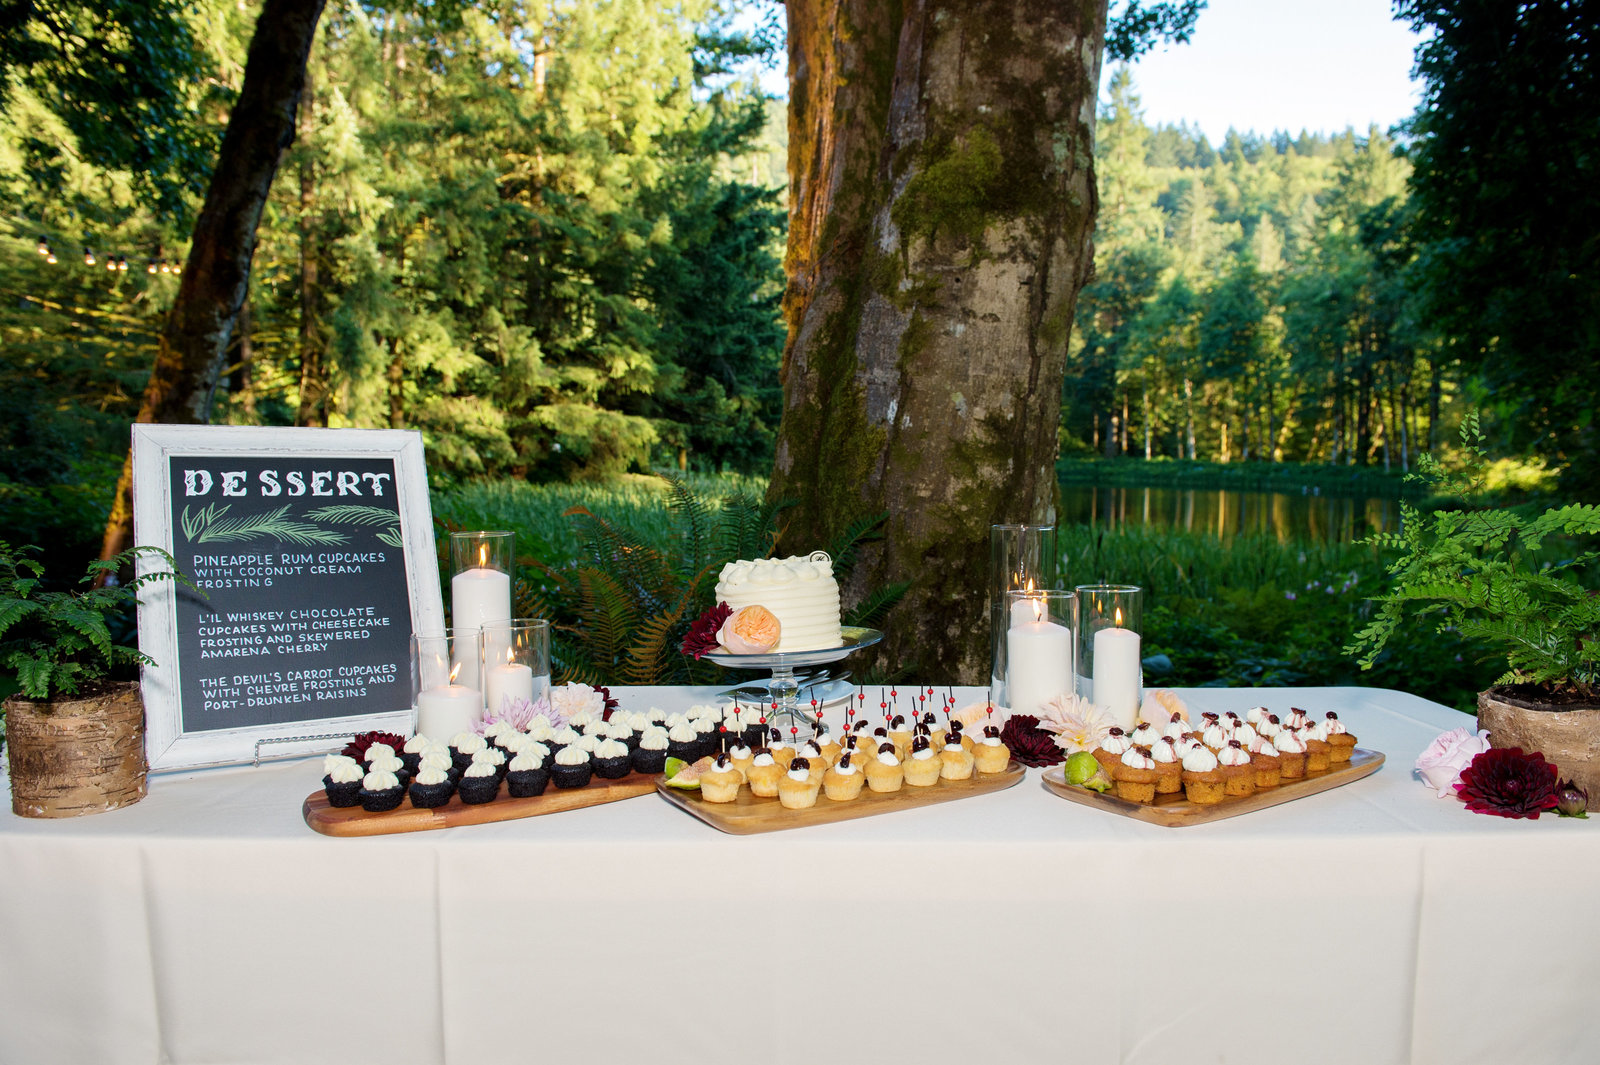 the dessert table outside with mini cupckaes